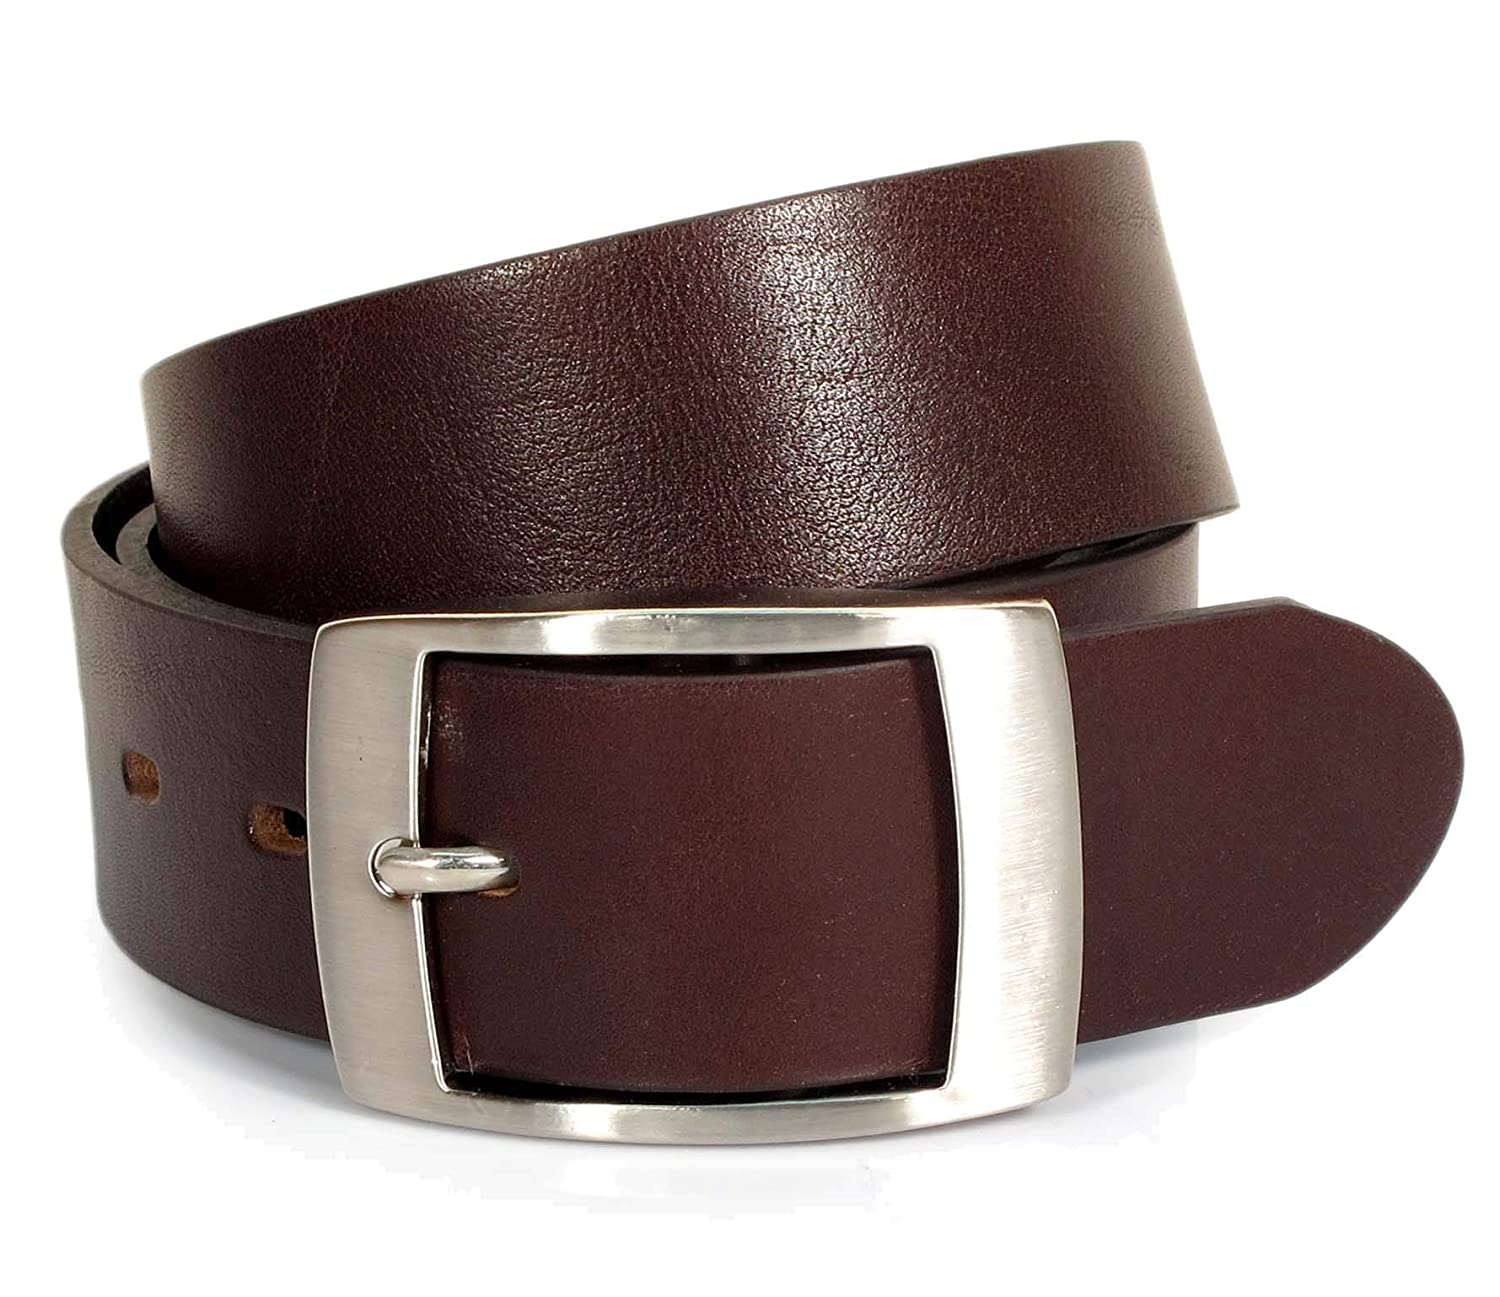 CA1 Mens Real Genuine Leather Belt Black Brown White 1.5 Wide S-XL Casual Jeans